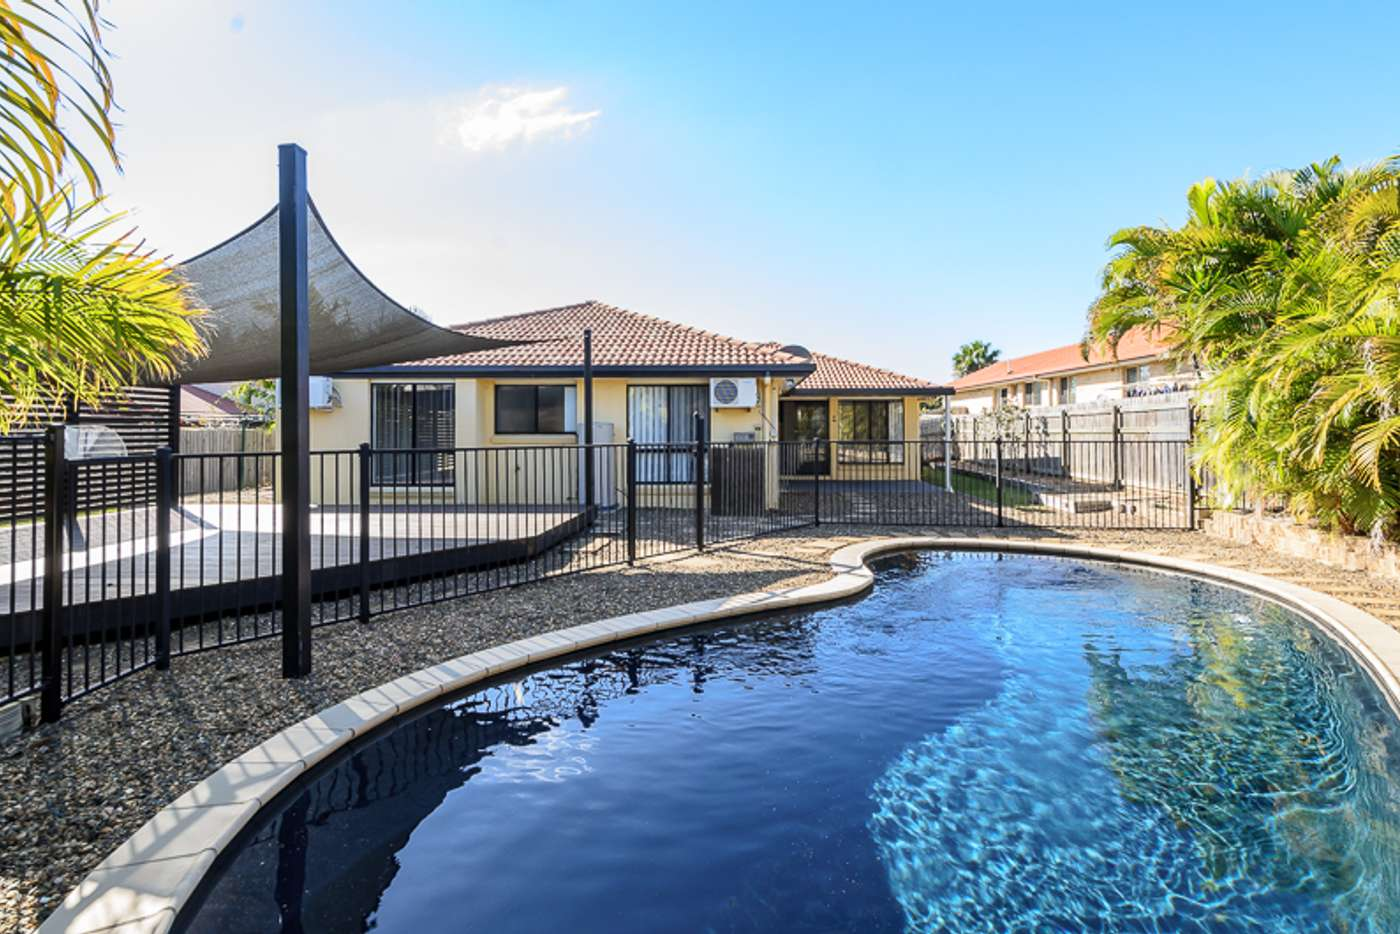 Main view of Homely house listing, 3 Reinaerhoff Crescent, Glen Eden QLD 4680